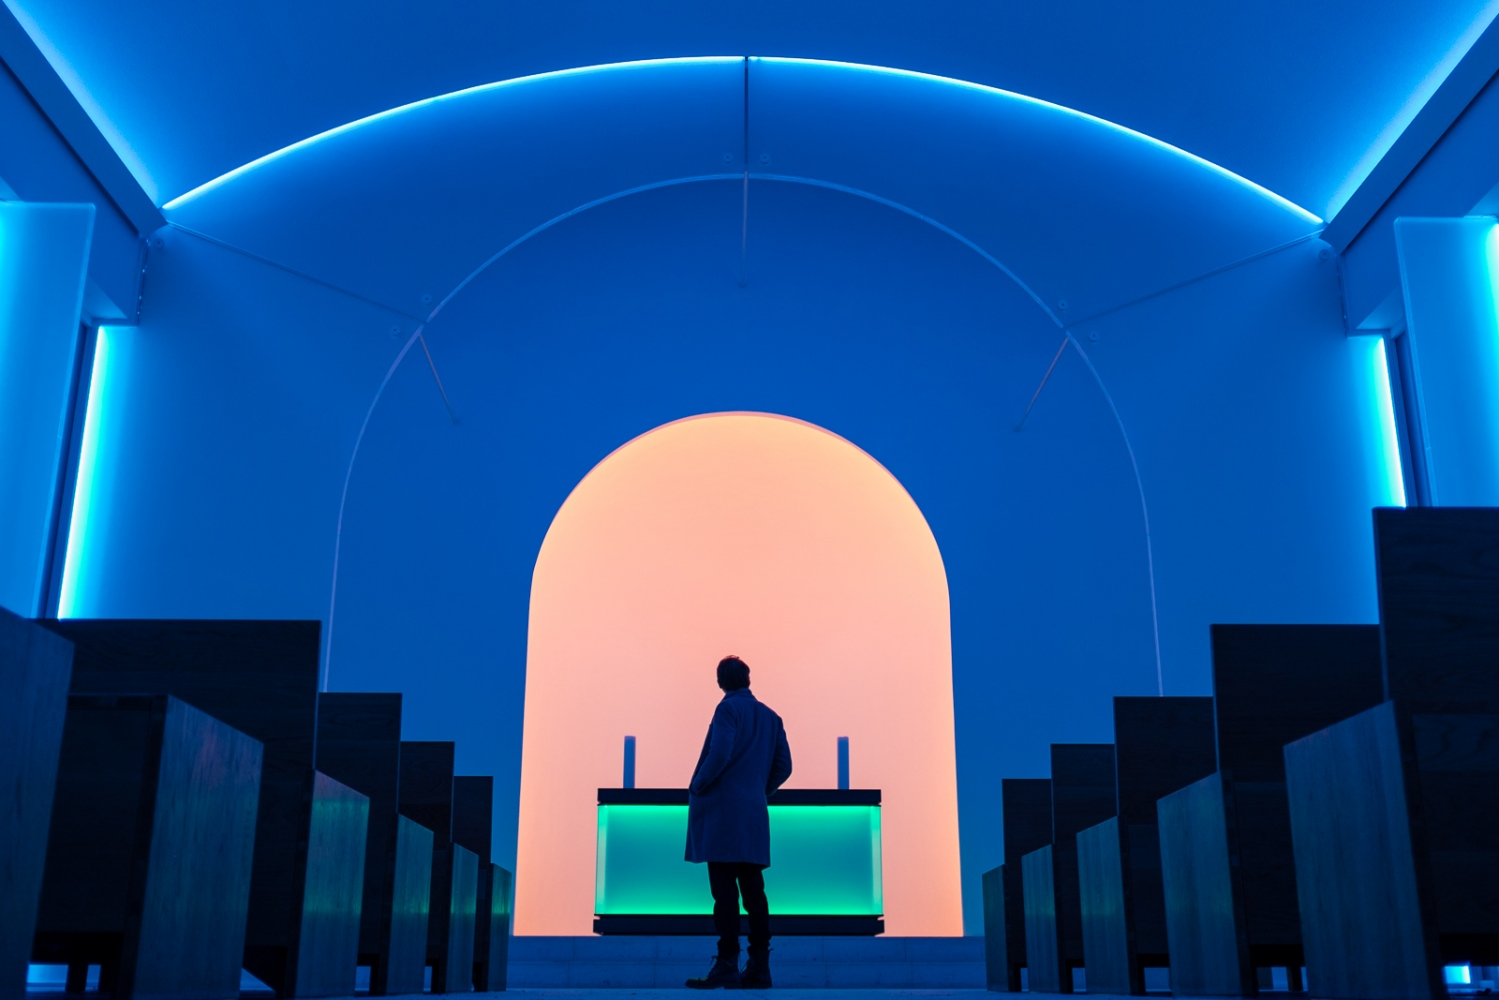 Berlin, GERMANY, January 21, 2017: A visitor observes the light installation by James Turrell, the infamous American light artist, in the chapel of Dorotheenstädtischer Cemetery in Berlin. The exhibition occurs during the blue hour just before dusk. Turrell plays with the concept of biblical light: starting with blue light, the chapel is slowly filled with pinks, oranges and reds, mimicking that of a real sunset.